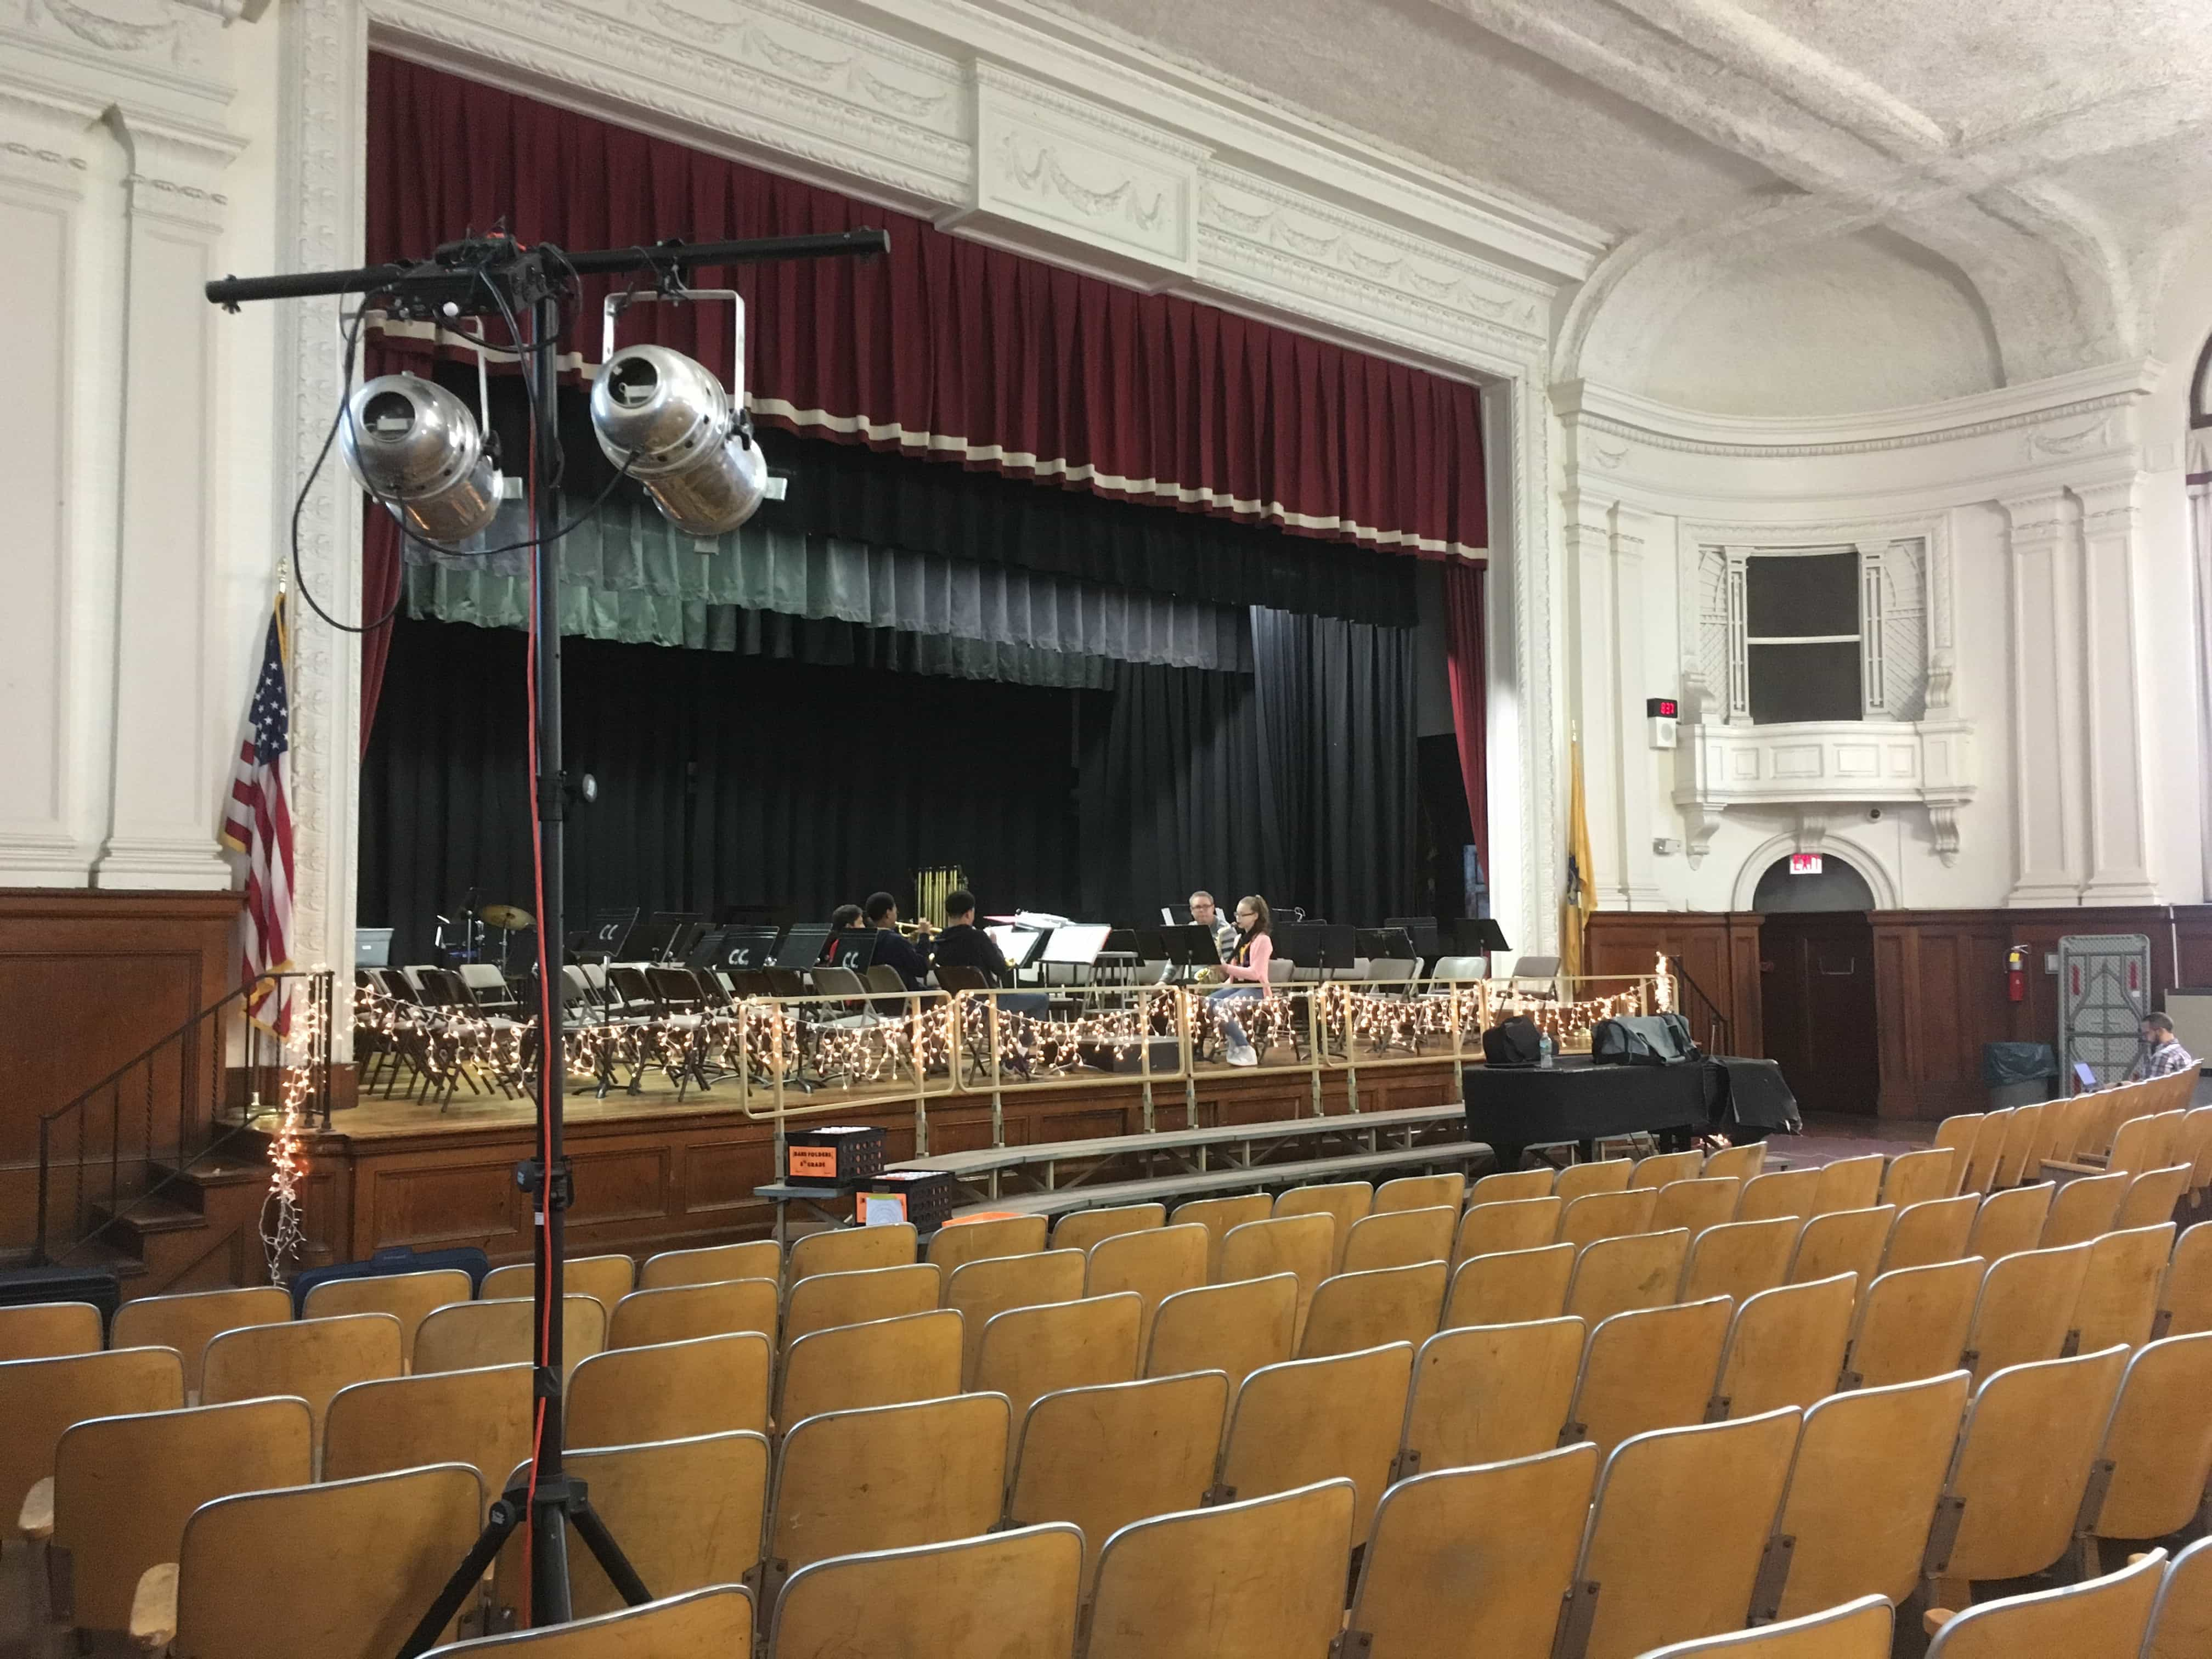 Holiday concert stage lighting in nj cmt sound systems